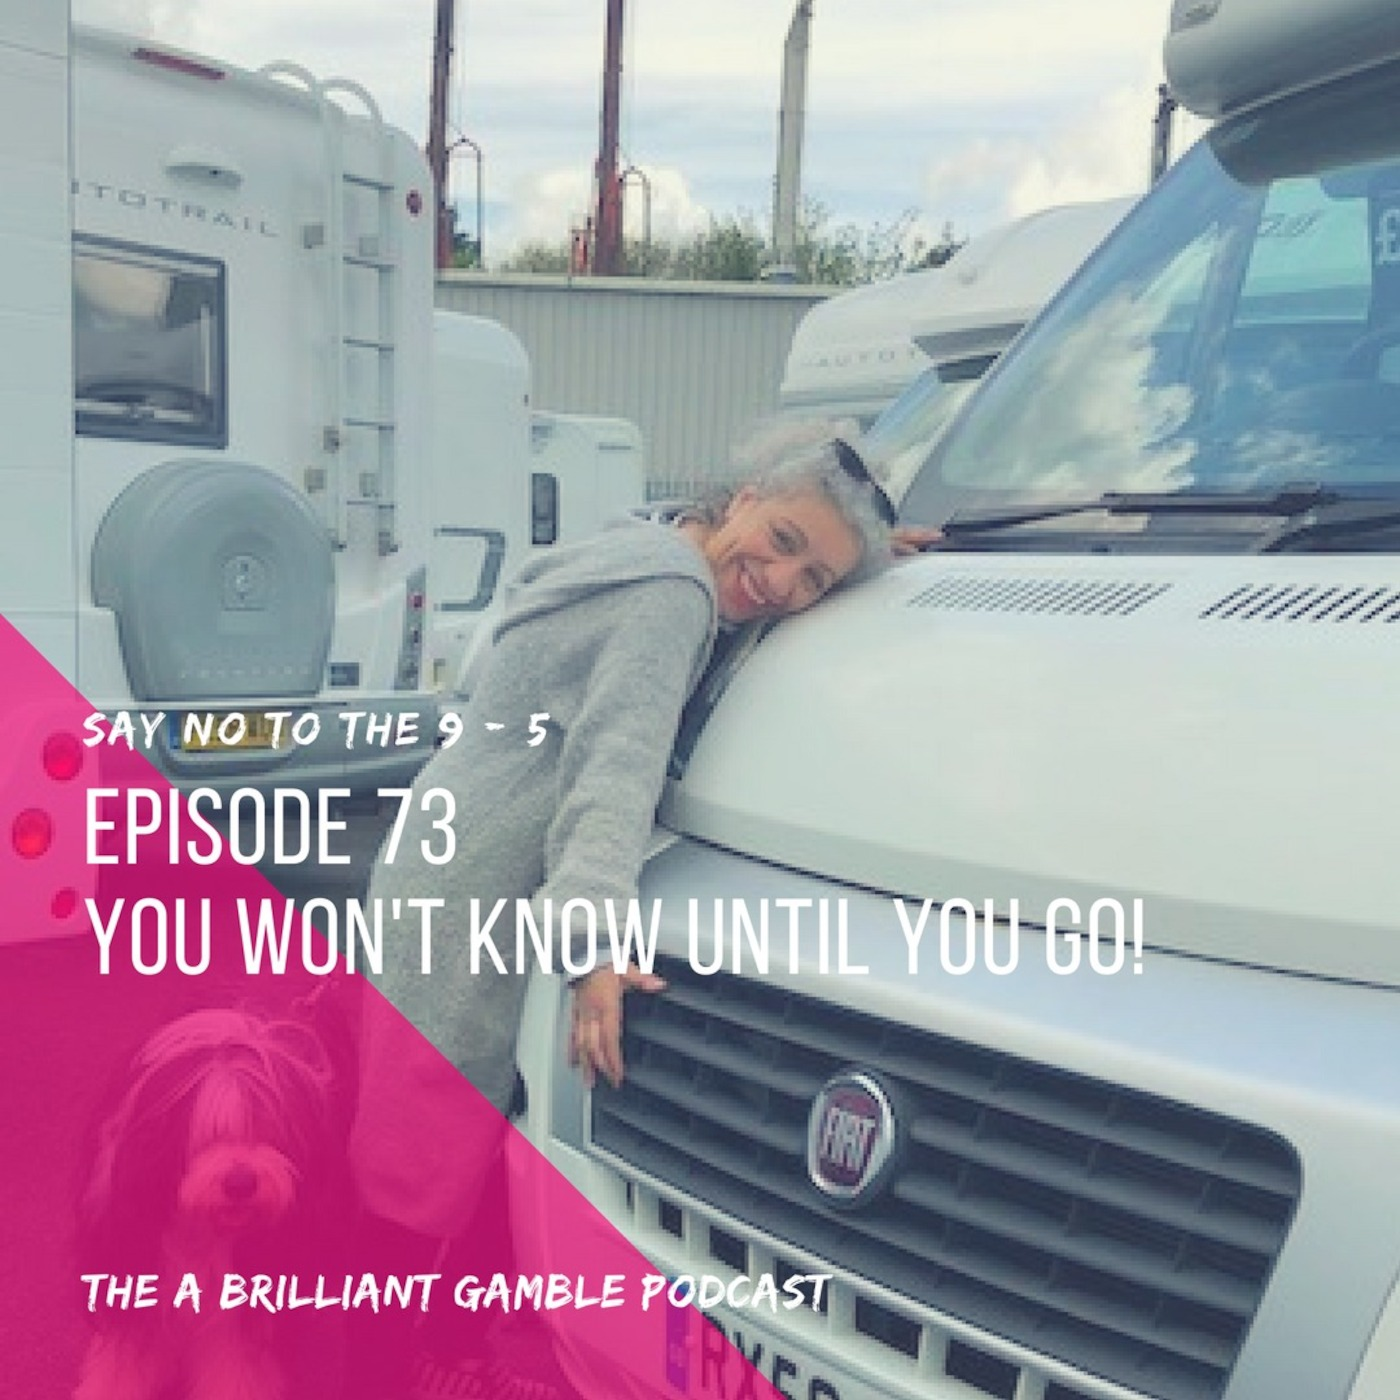 Episode 73: You Won't Know Until You Go!